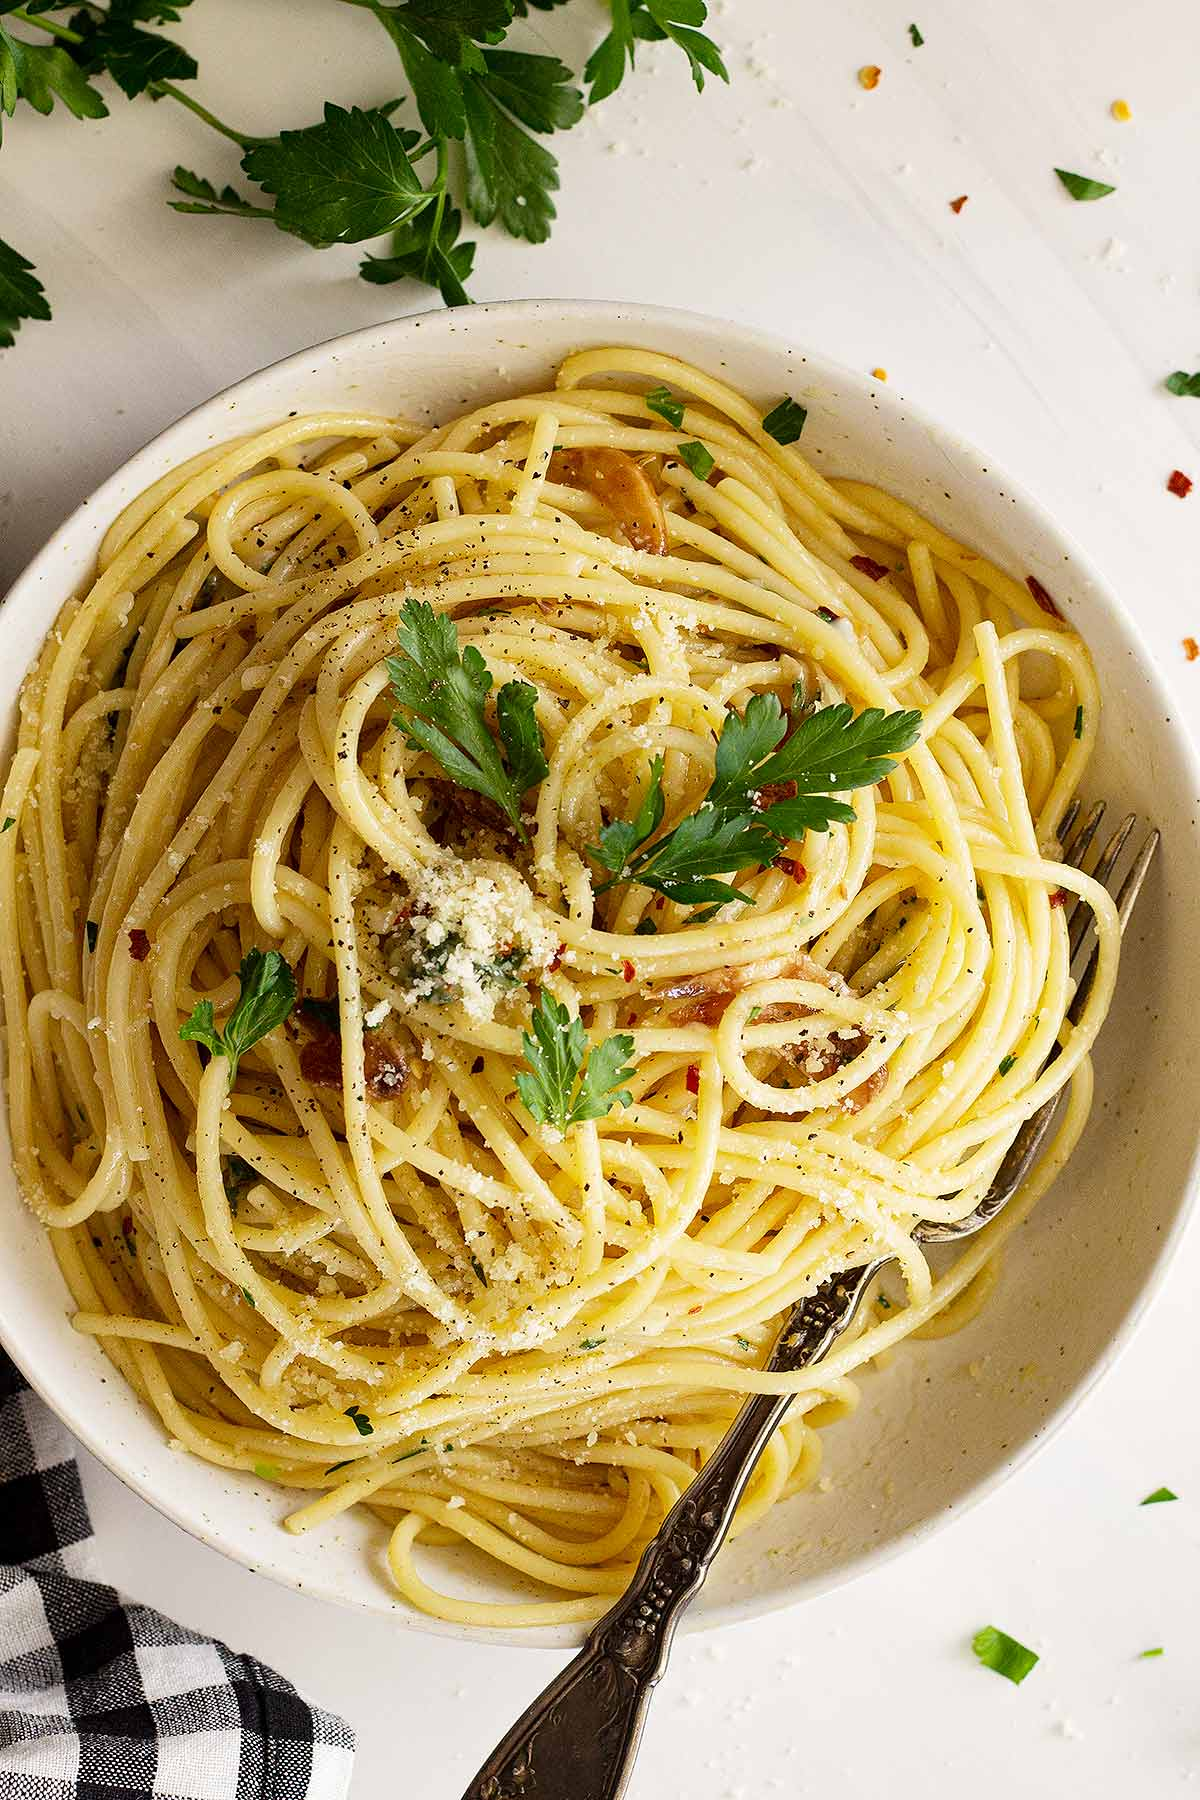 Spaghetti Aglio e Olio topped with parmesan and herbs in a white bowl